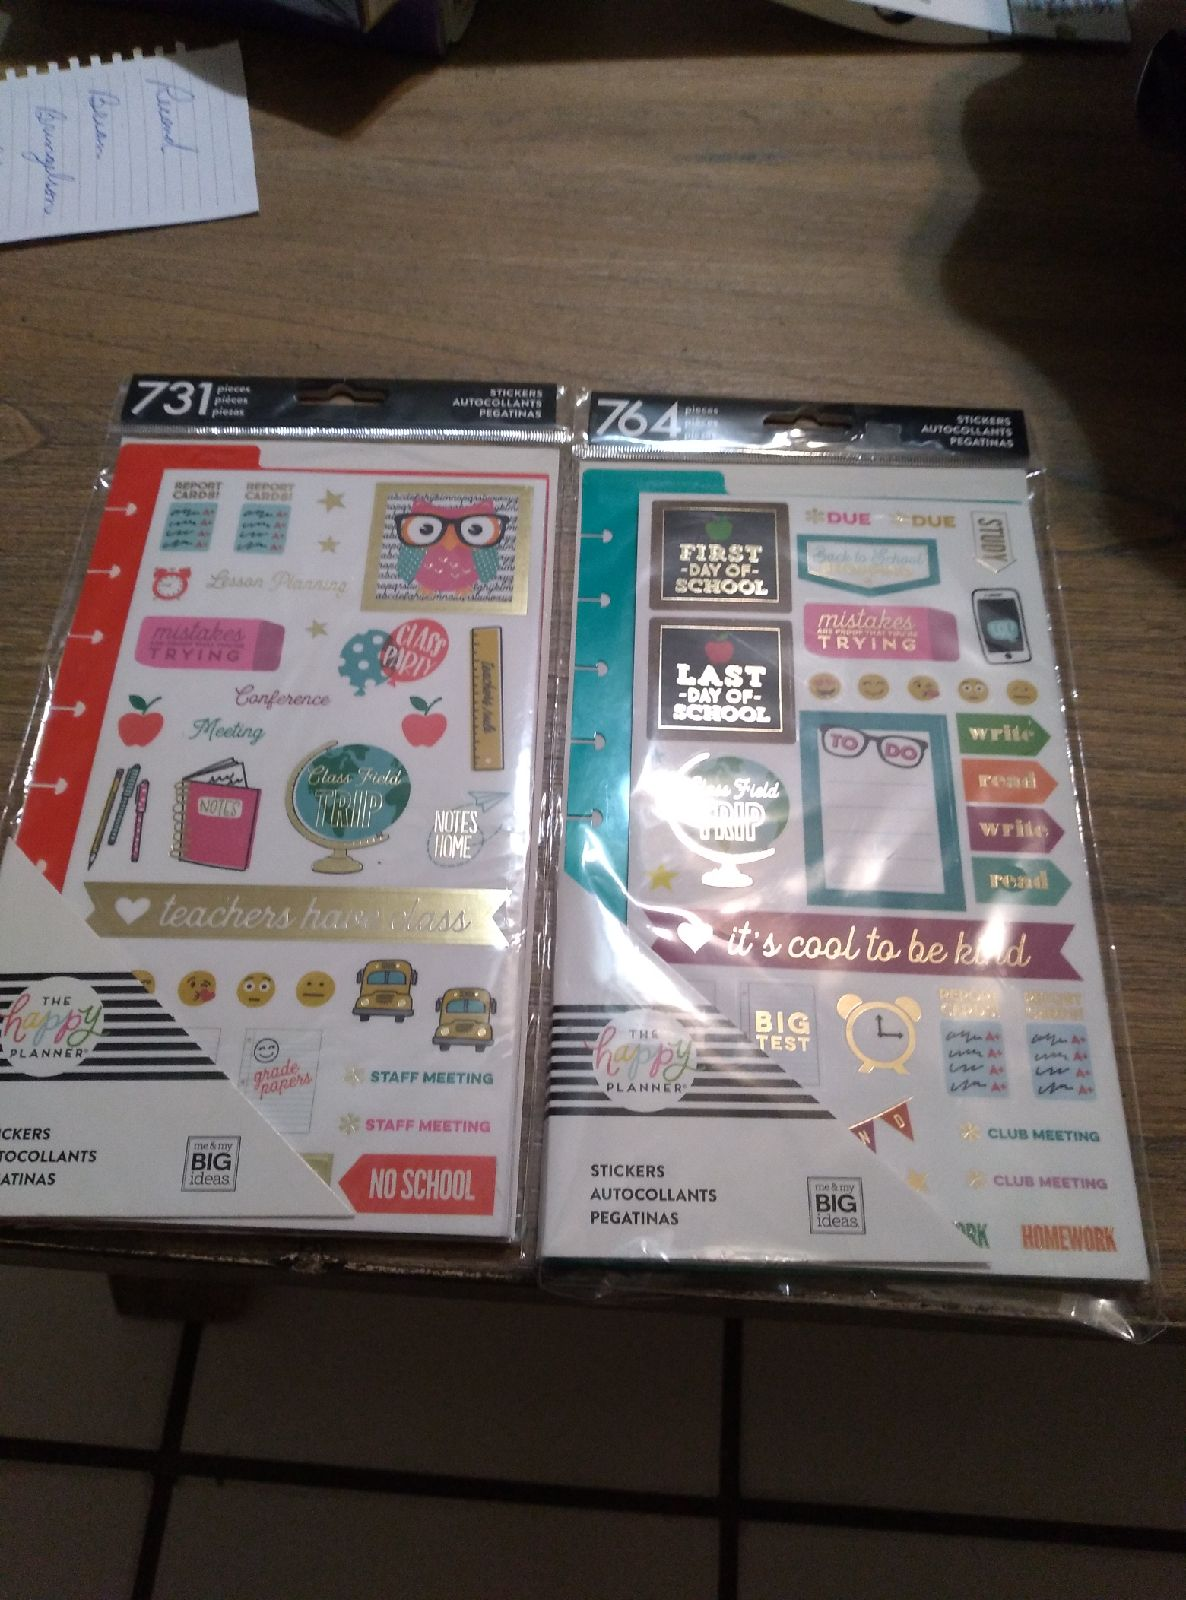 The happy planner Stickers